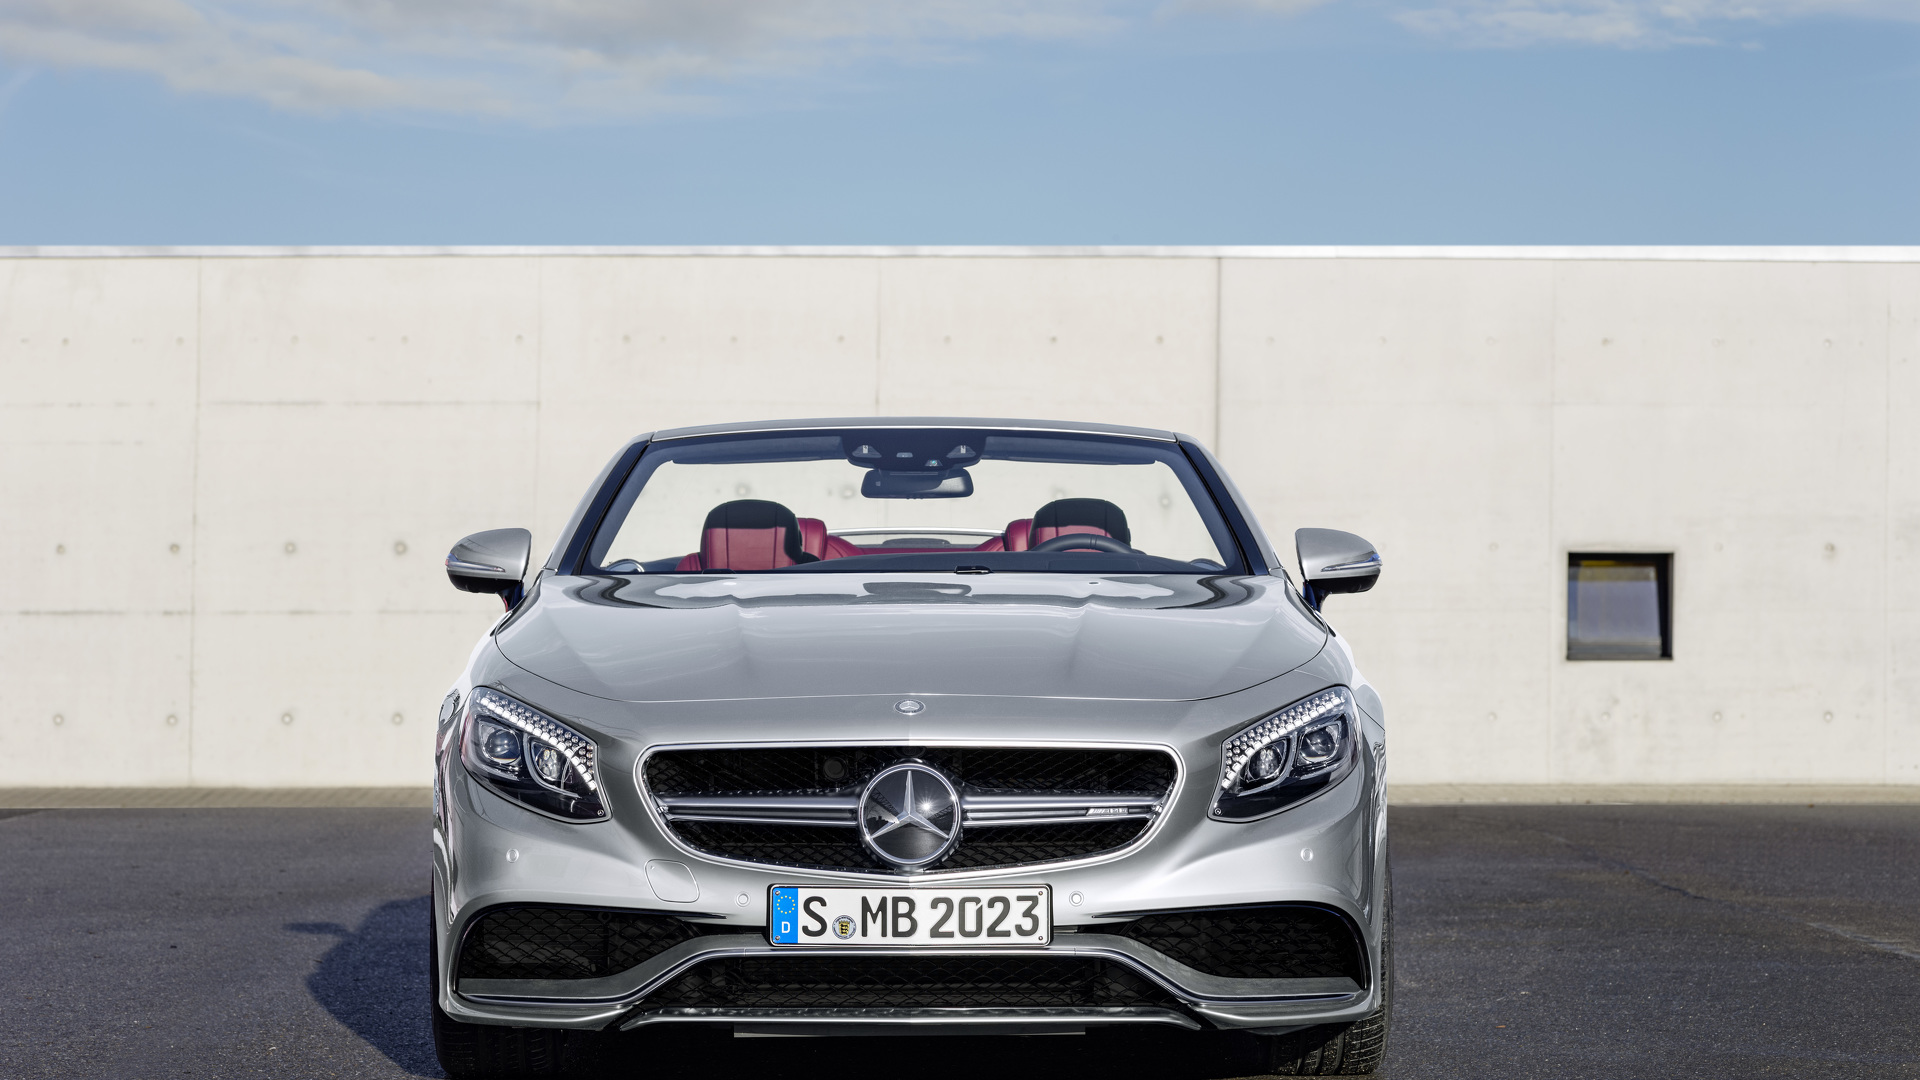 https://icdn-6.motor1.com/images/mgl/KmWj1/s1/mercedes-amg-s63-4matic-cabriolet-130-edition1.jpg